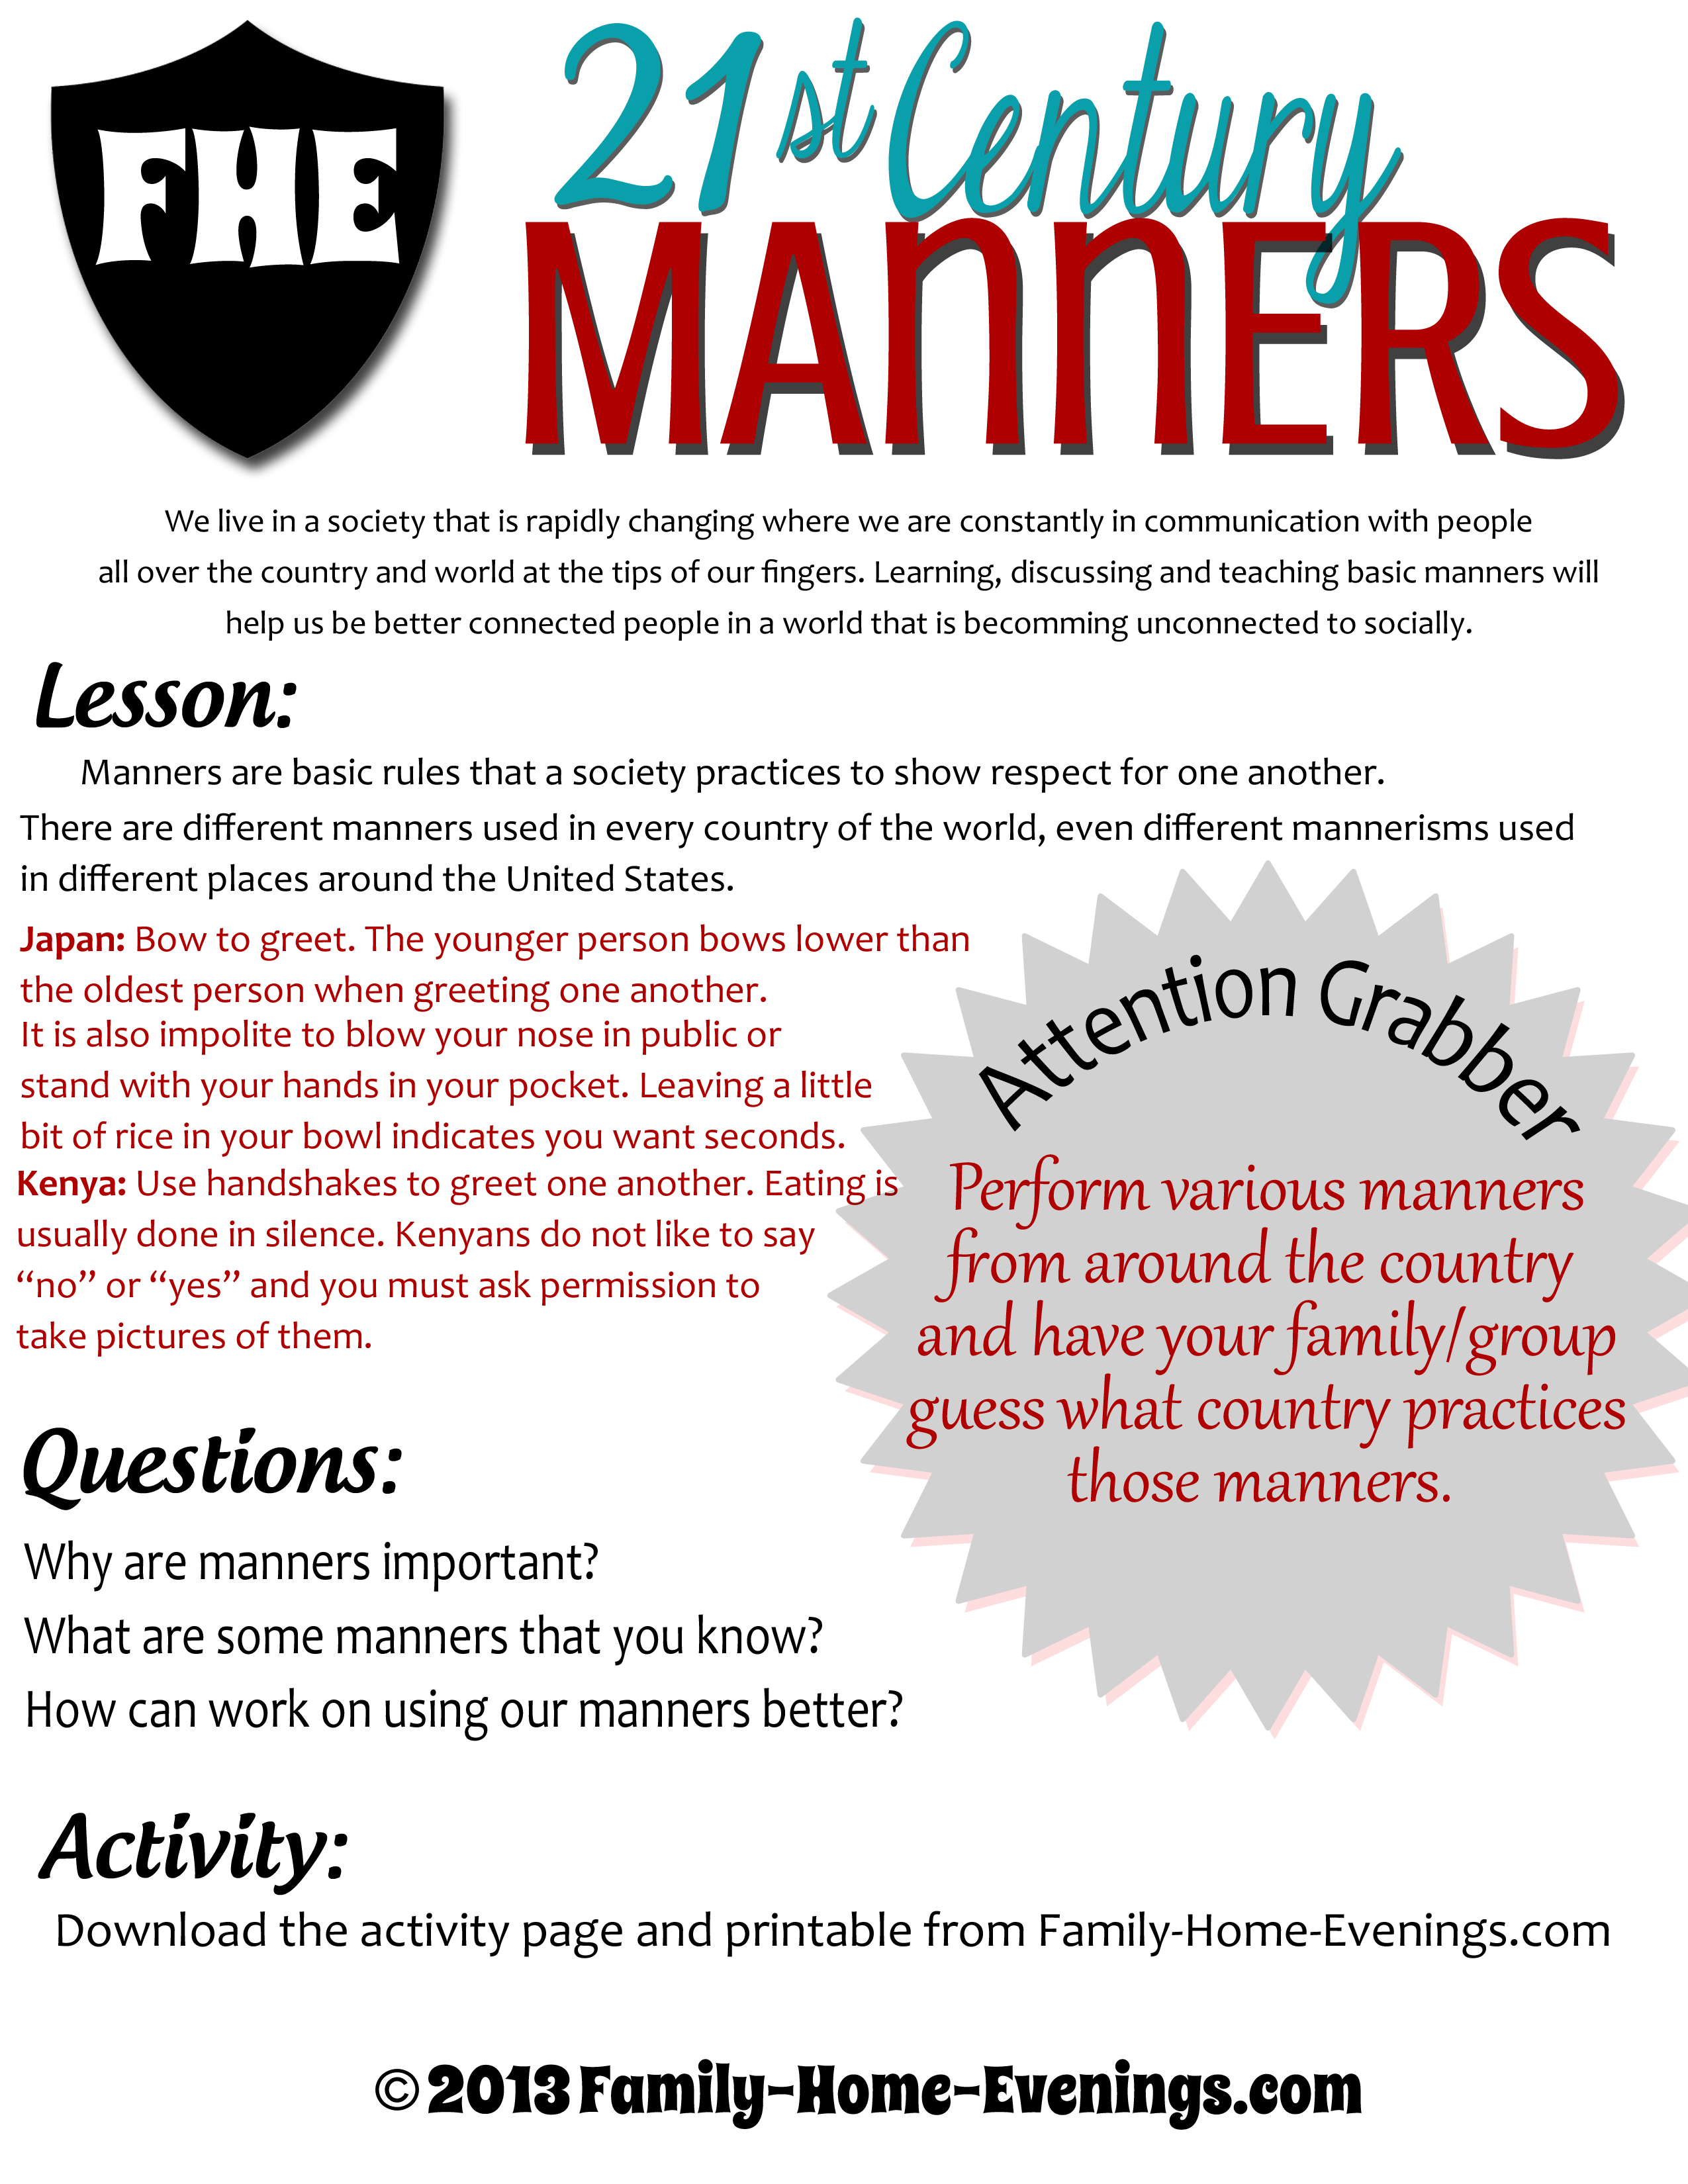 Family Home Evening Family Nights Manners Teaching Manners